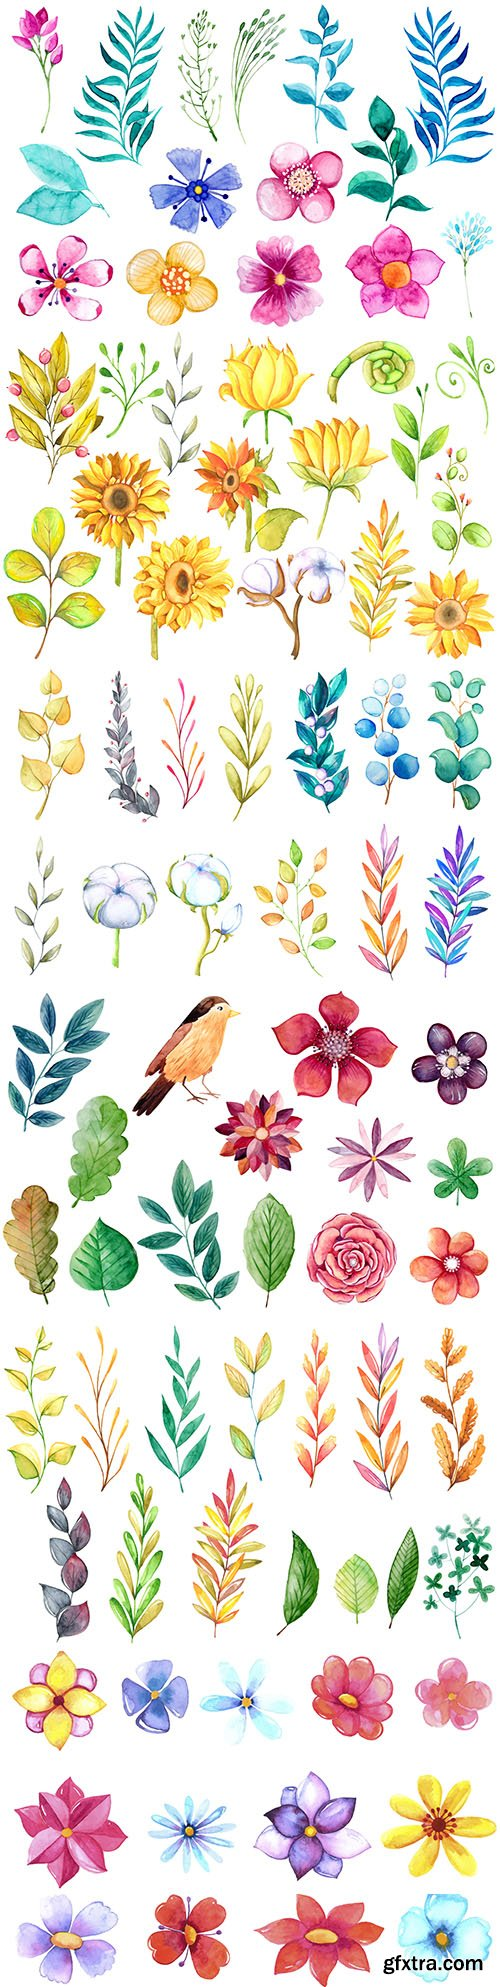 Watercolour collection flowers, leaves and branches